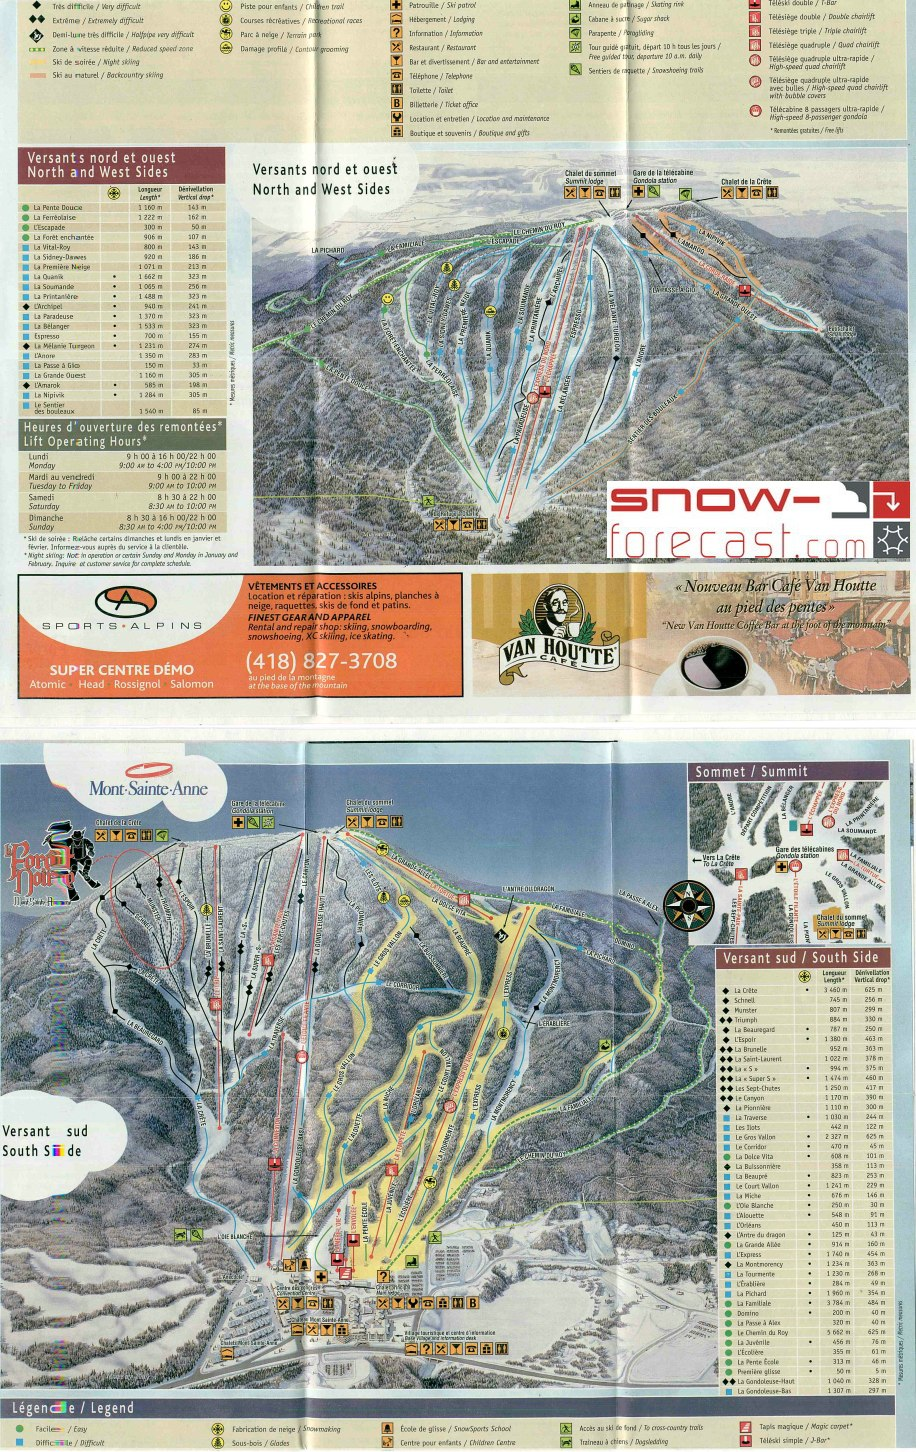 Mont Sainte-Anne Piste / Trail Map